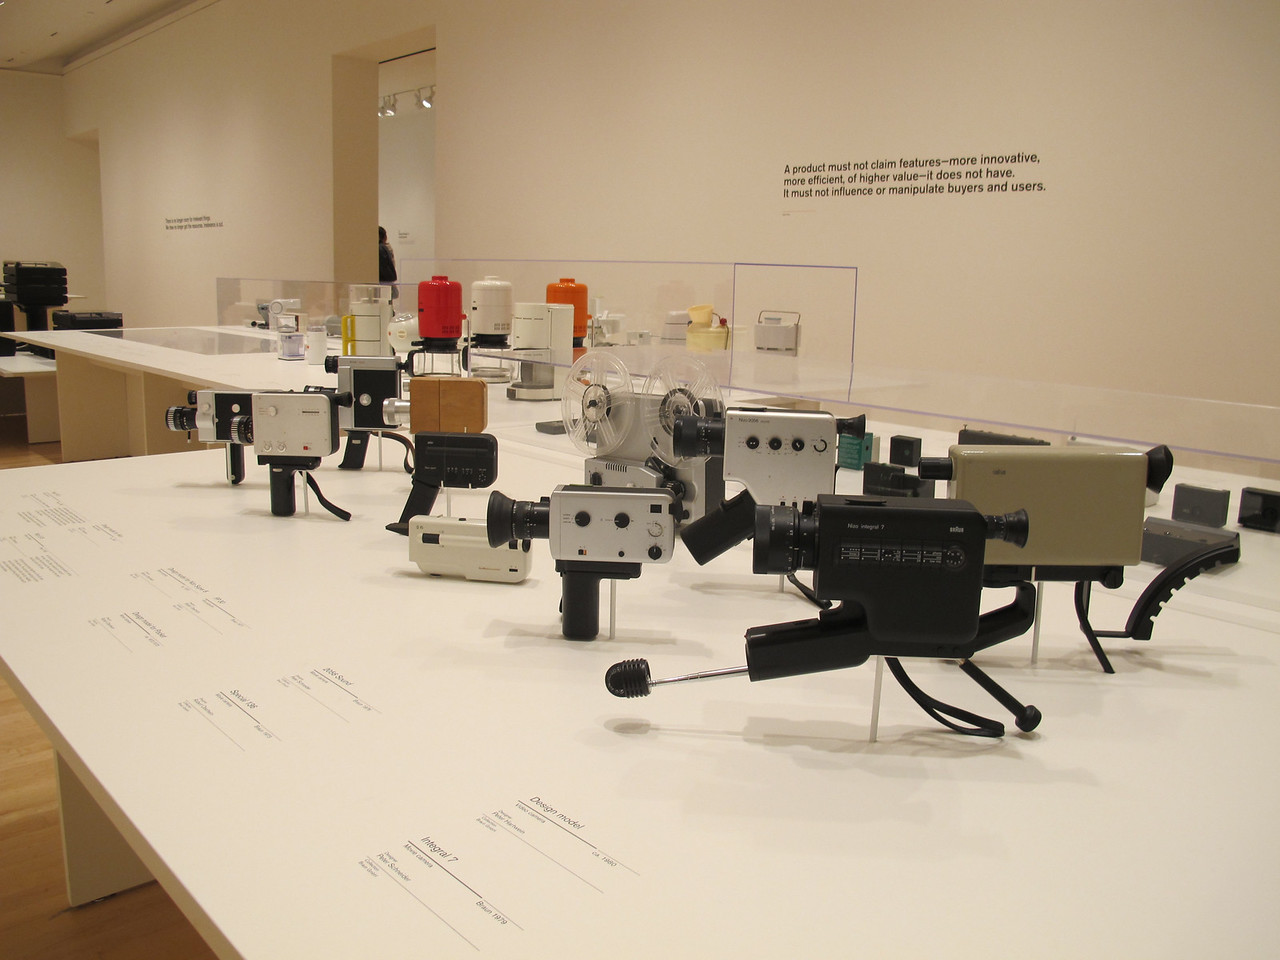 Industrial design display in SF Museum of Modern Art.